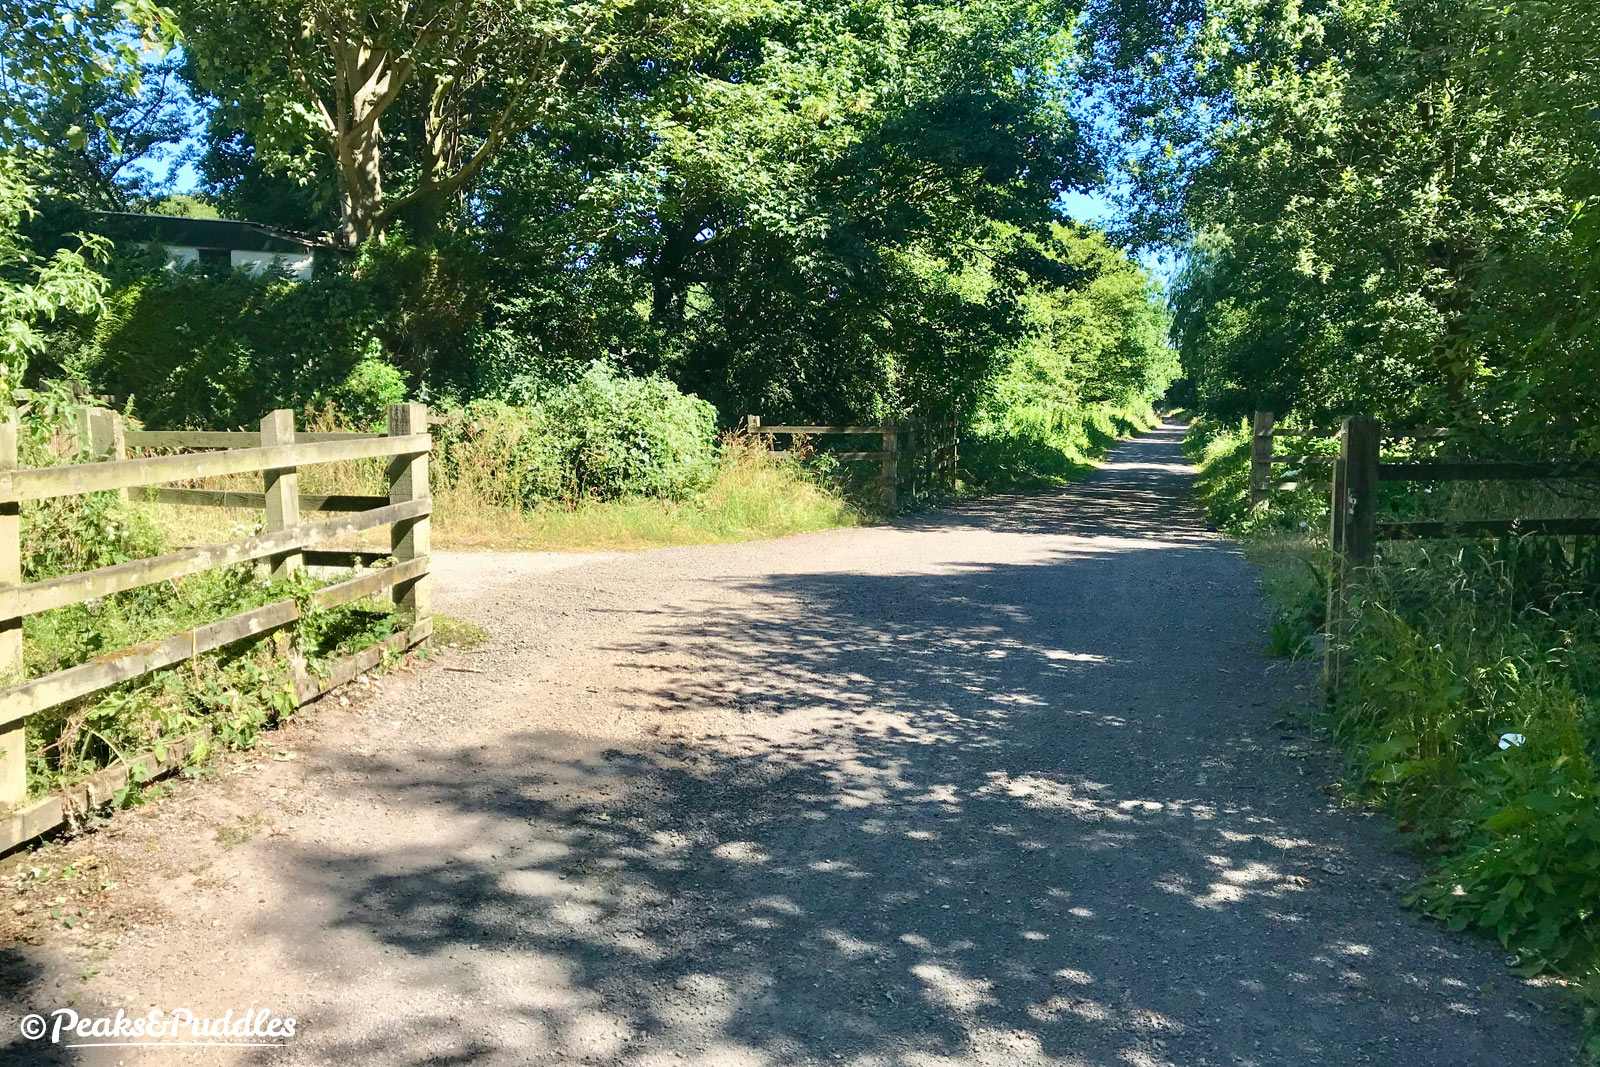 A series of gates used to narrow the trail at several points leaving Marple, but a recent upgrade project has seen the path completely widened out.